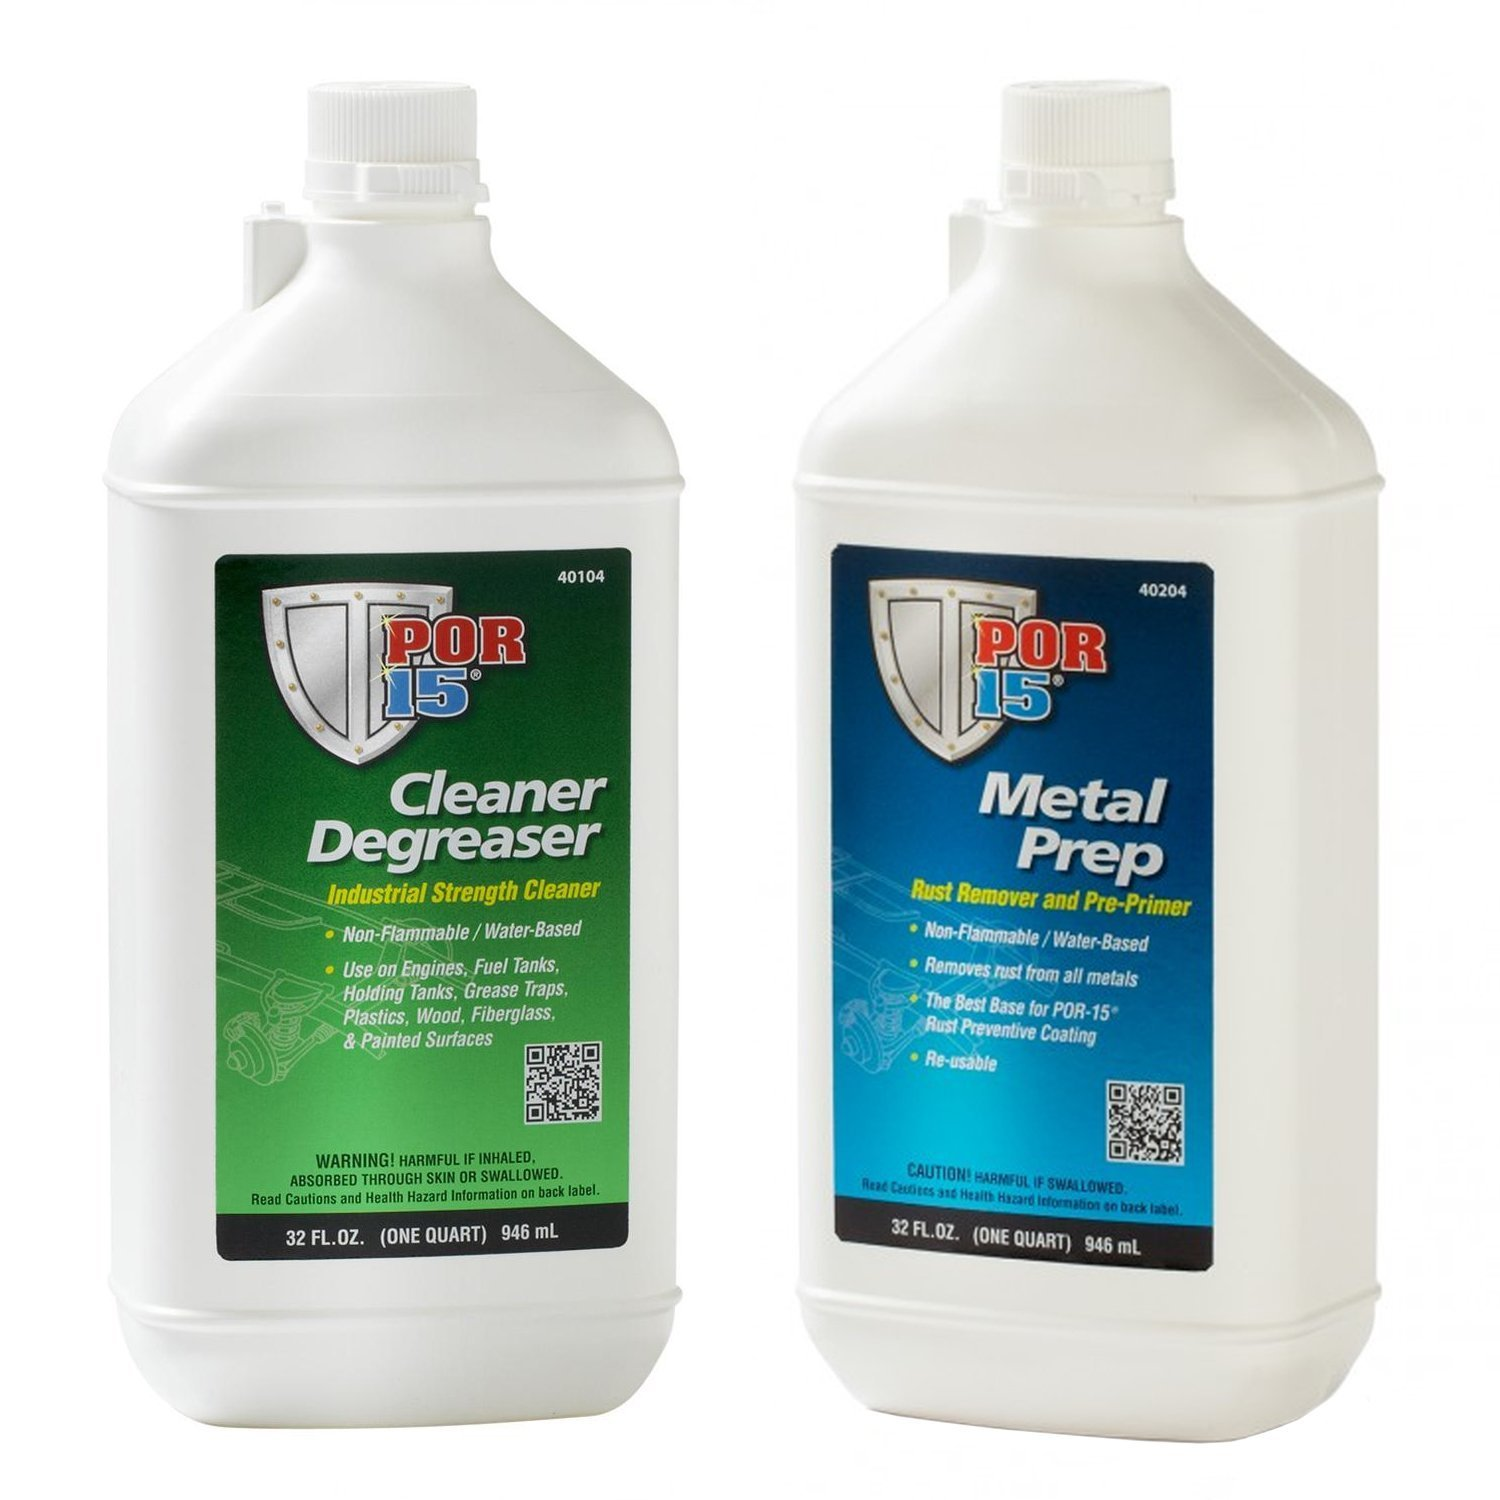 POR-15 Quart Cleaning Kit with Marine Clean Degreaser & Metal Ready Surface Prep Solution by POR-15 (Image #1)